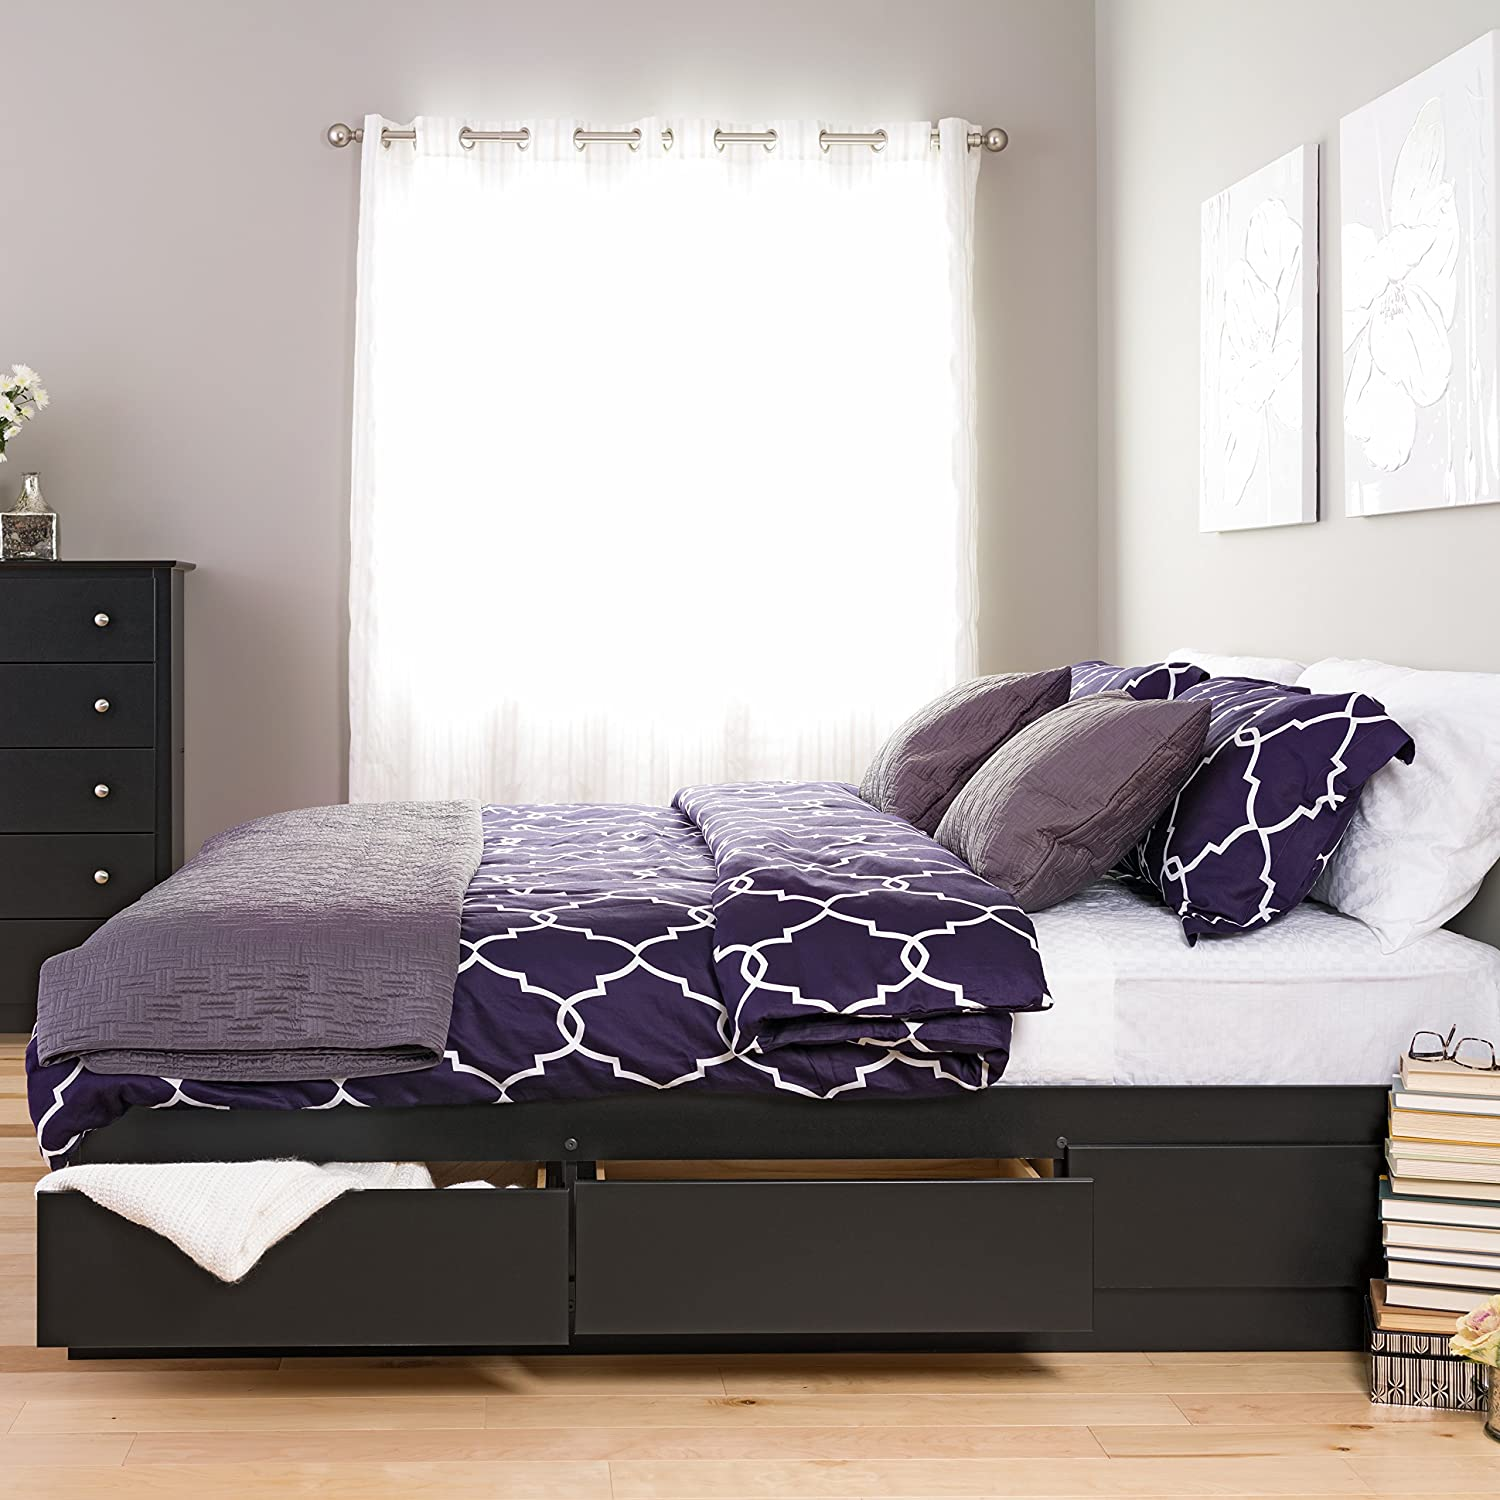 rustic king beds storage with platform full bed frame pin drawers size california